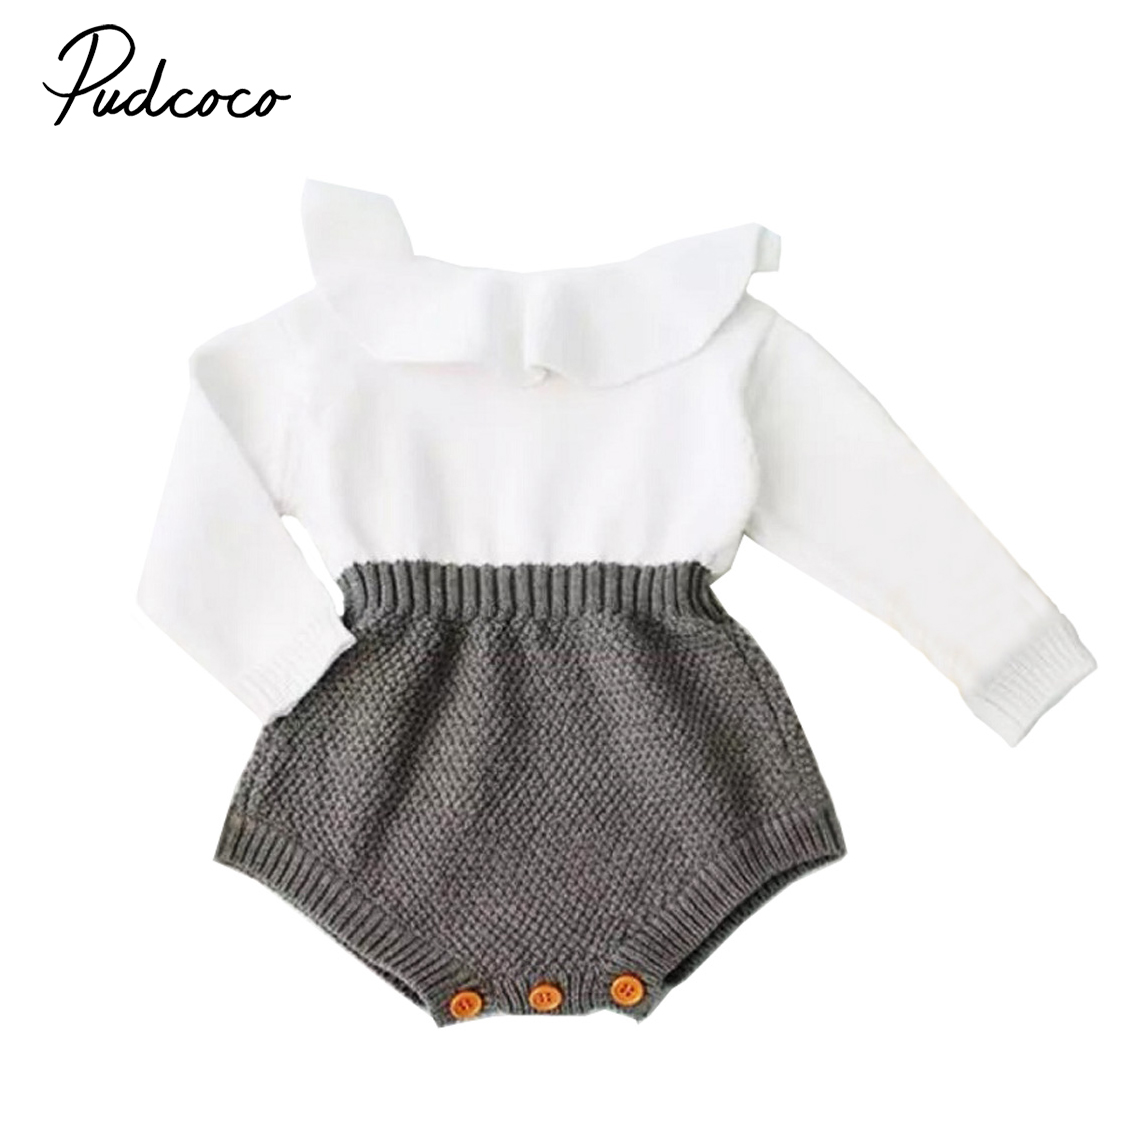 Pudcoco Fashion Kids Baby Girl Wool Knitting Long Sleeve Romper Jumpsuits Autumn Winter Warm Outfits Baby Girl Romper